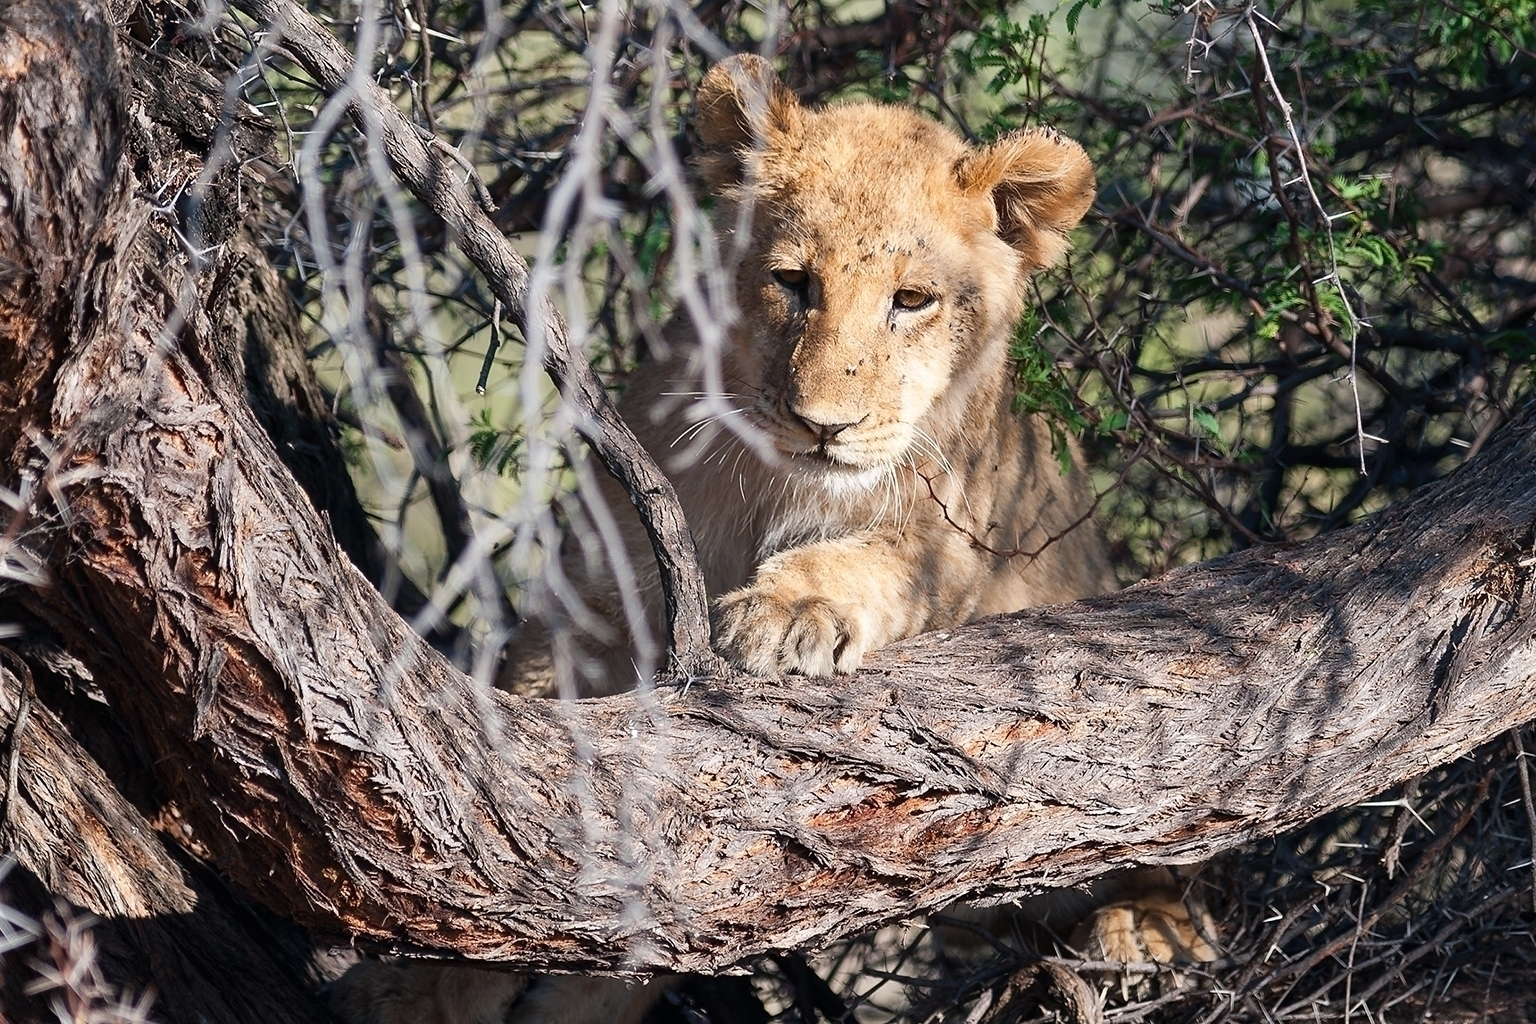 Lion cub seen on safari in Botswana